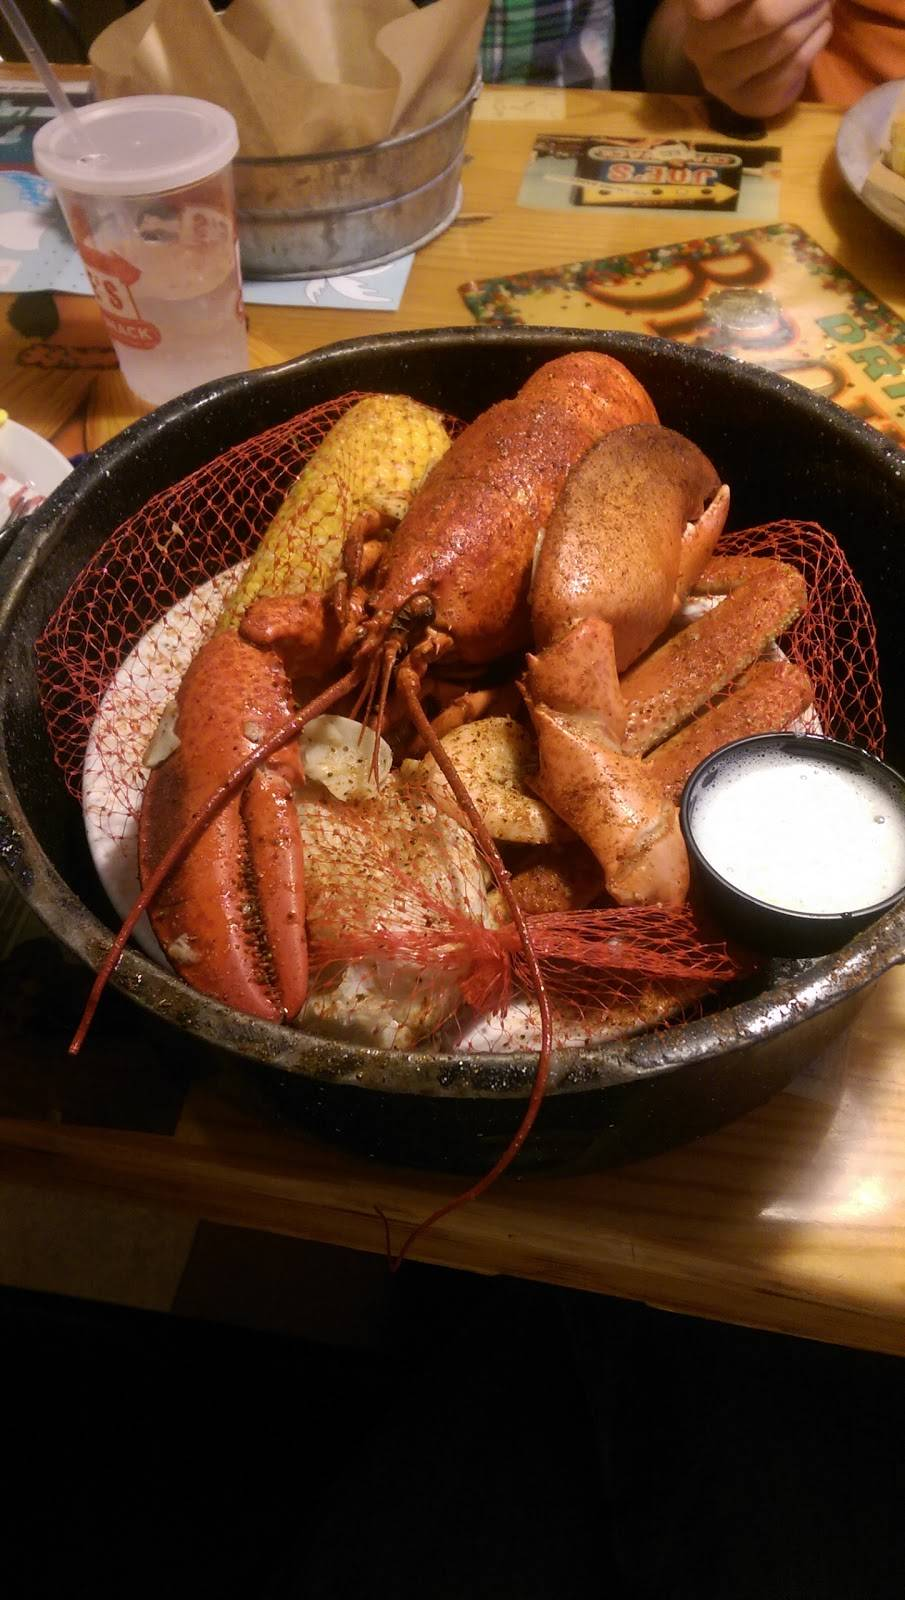 Joes Crab Shack | restaurant | 3720 W Dublin Granville Rd, Columbus, OH 43235, USA | 6147996106 OR +1 614-799-6106